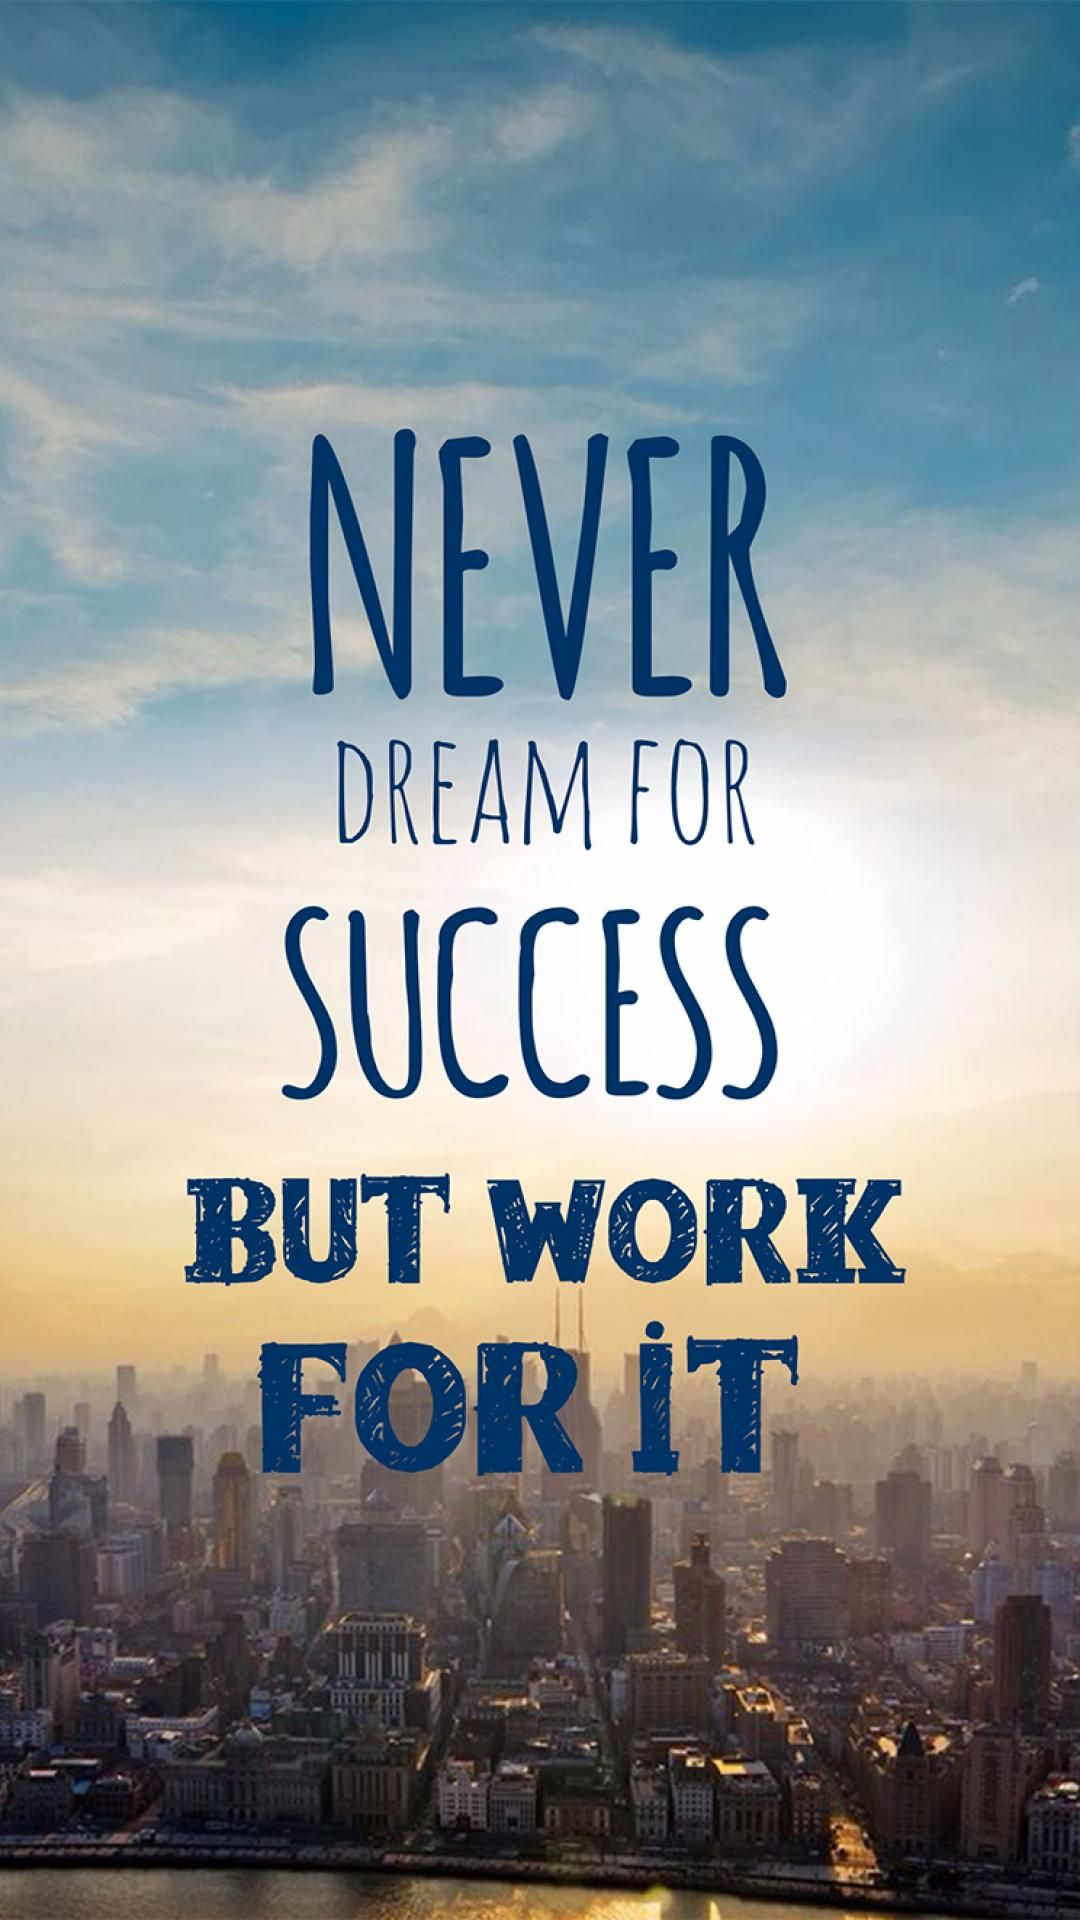 Inspirational Quotes Wallpapers For Mobile 8 Good Life Quotes Inspirational Quotes Wallpapers Motivational Quotes Wallpaper